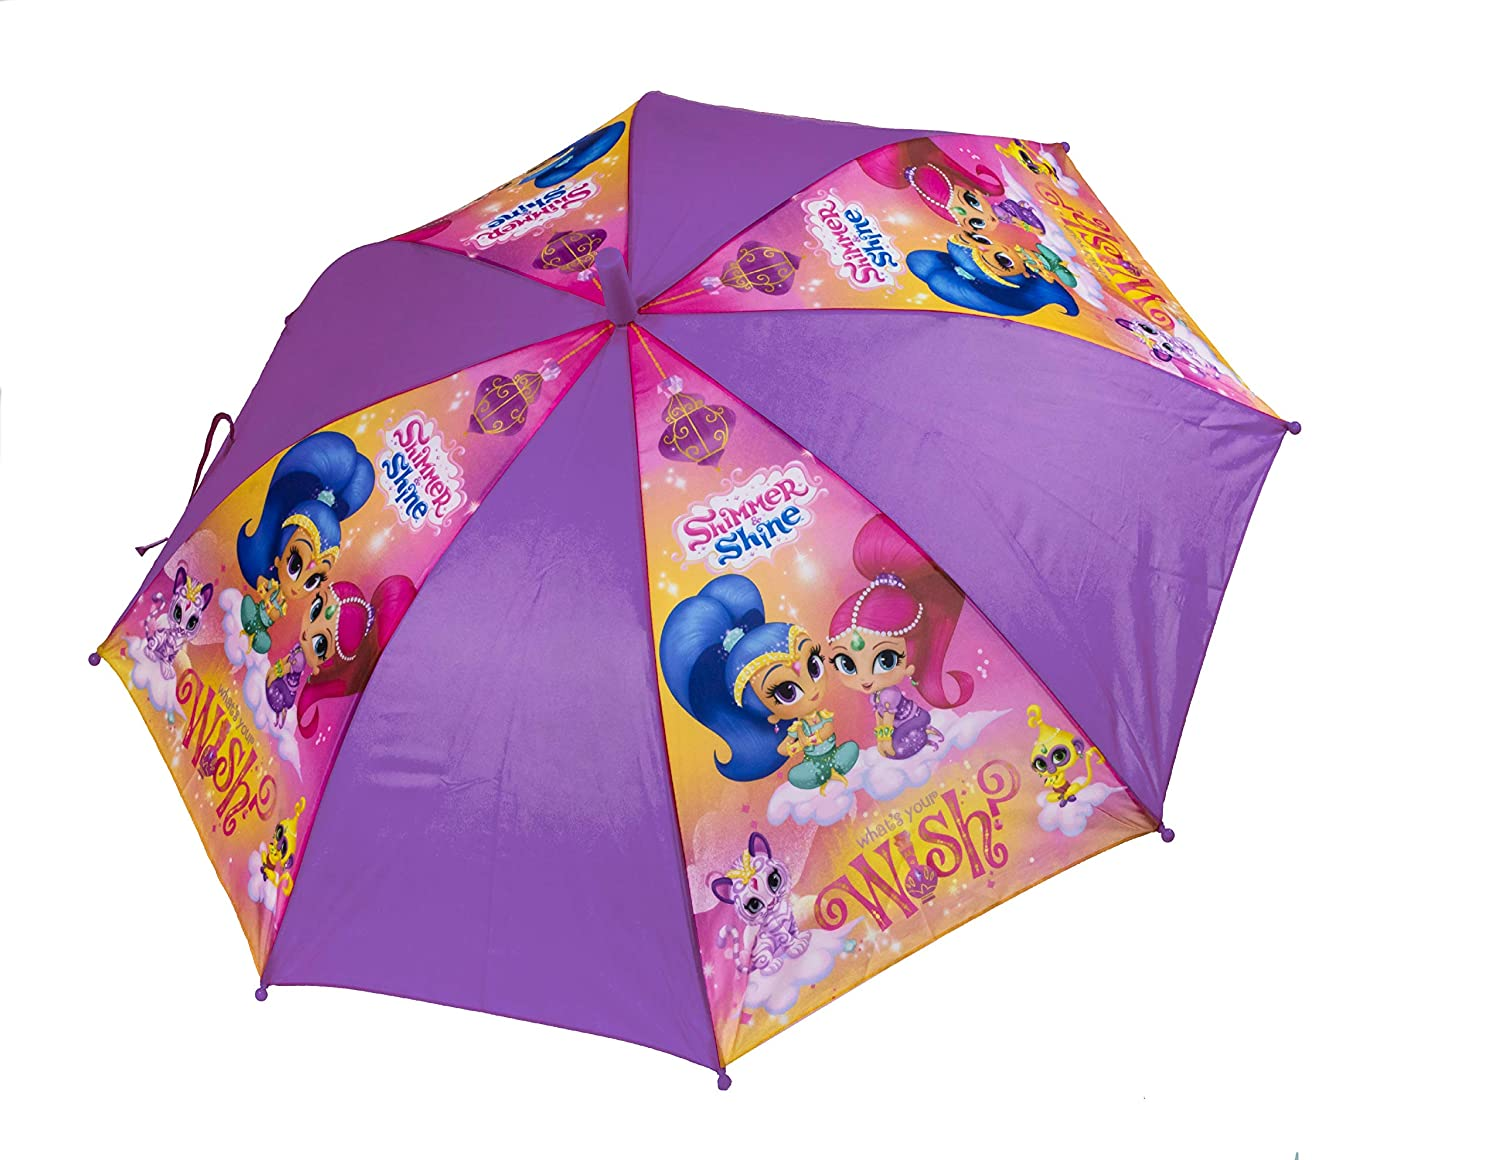 Shimmer and Shine Paraguas automático 48 cm: Amazon.es: Equipaje